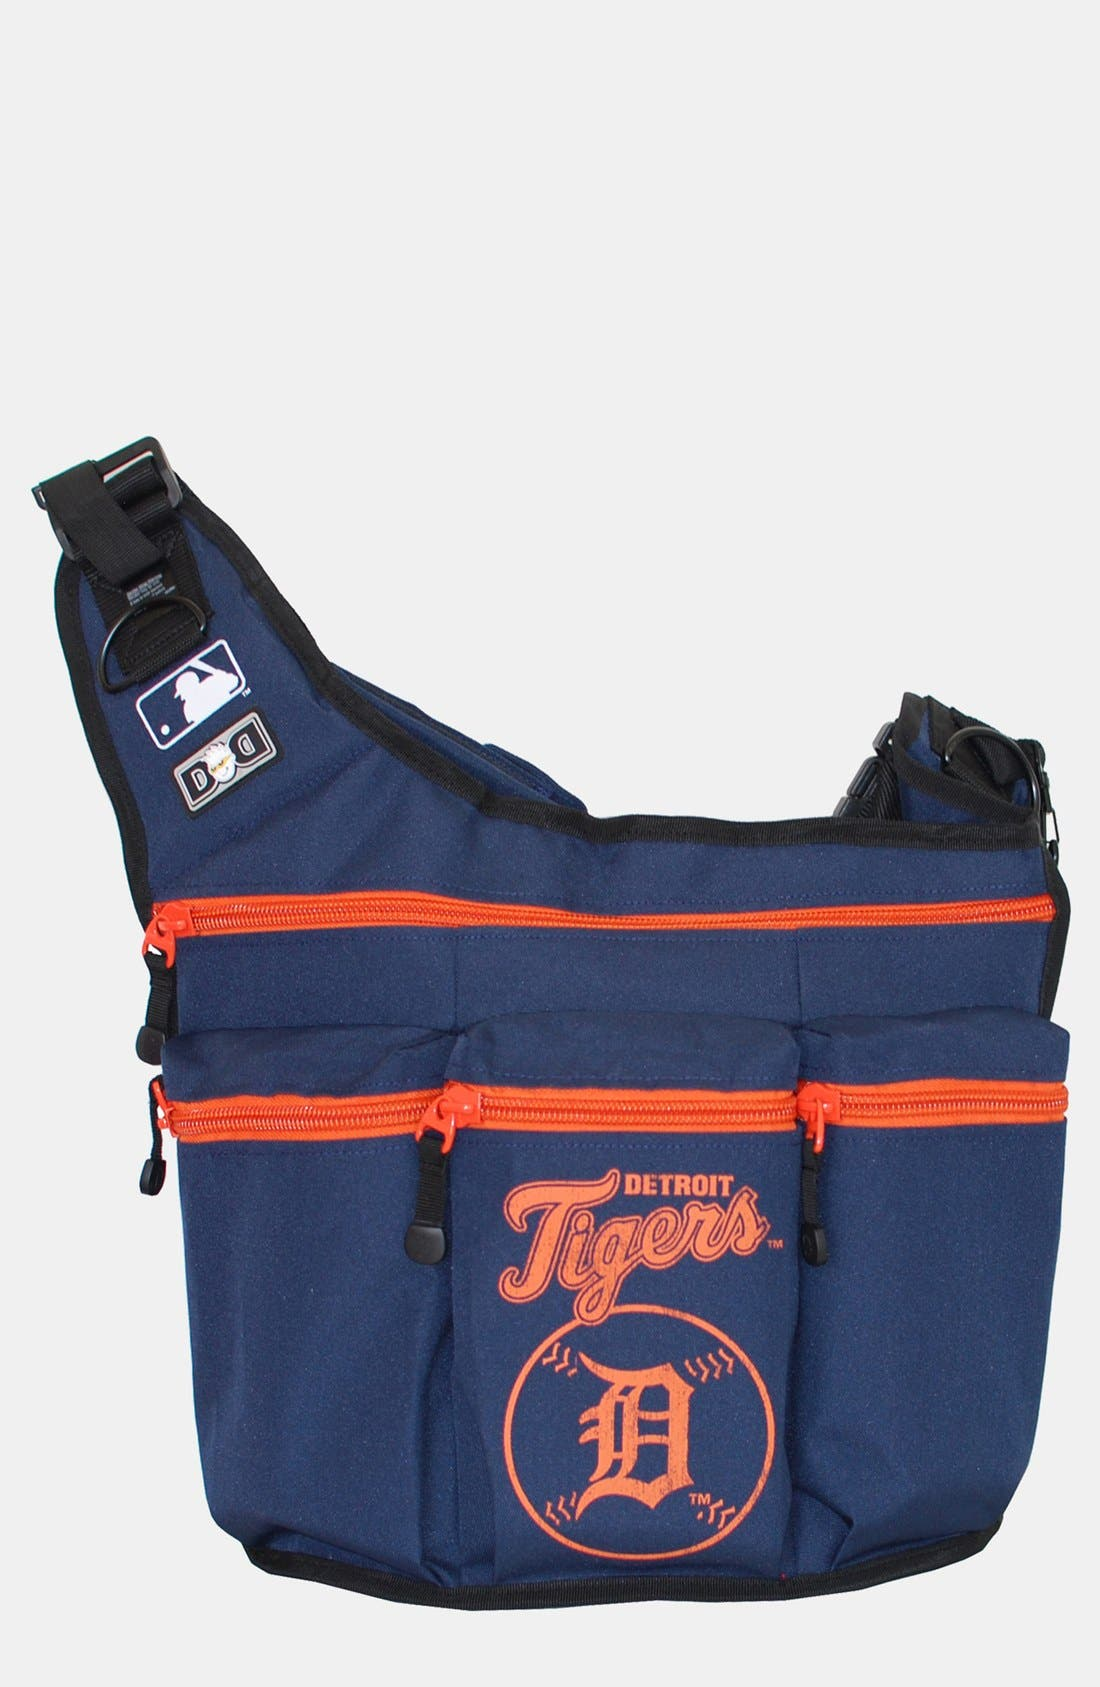 Diaper Dude 'Detroit Tigers' Messenger Diaper Bag